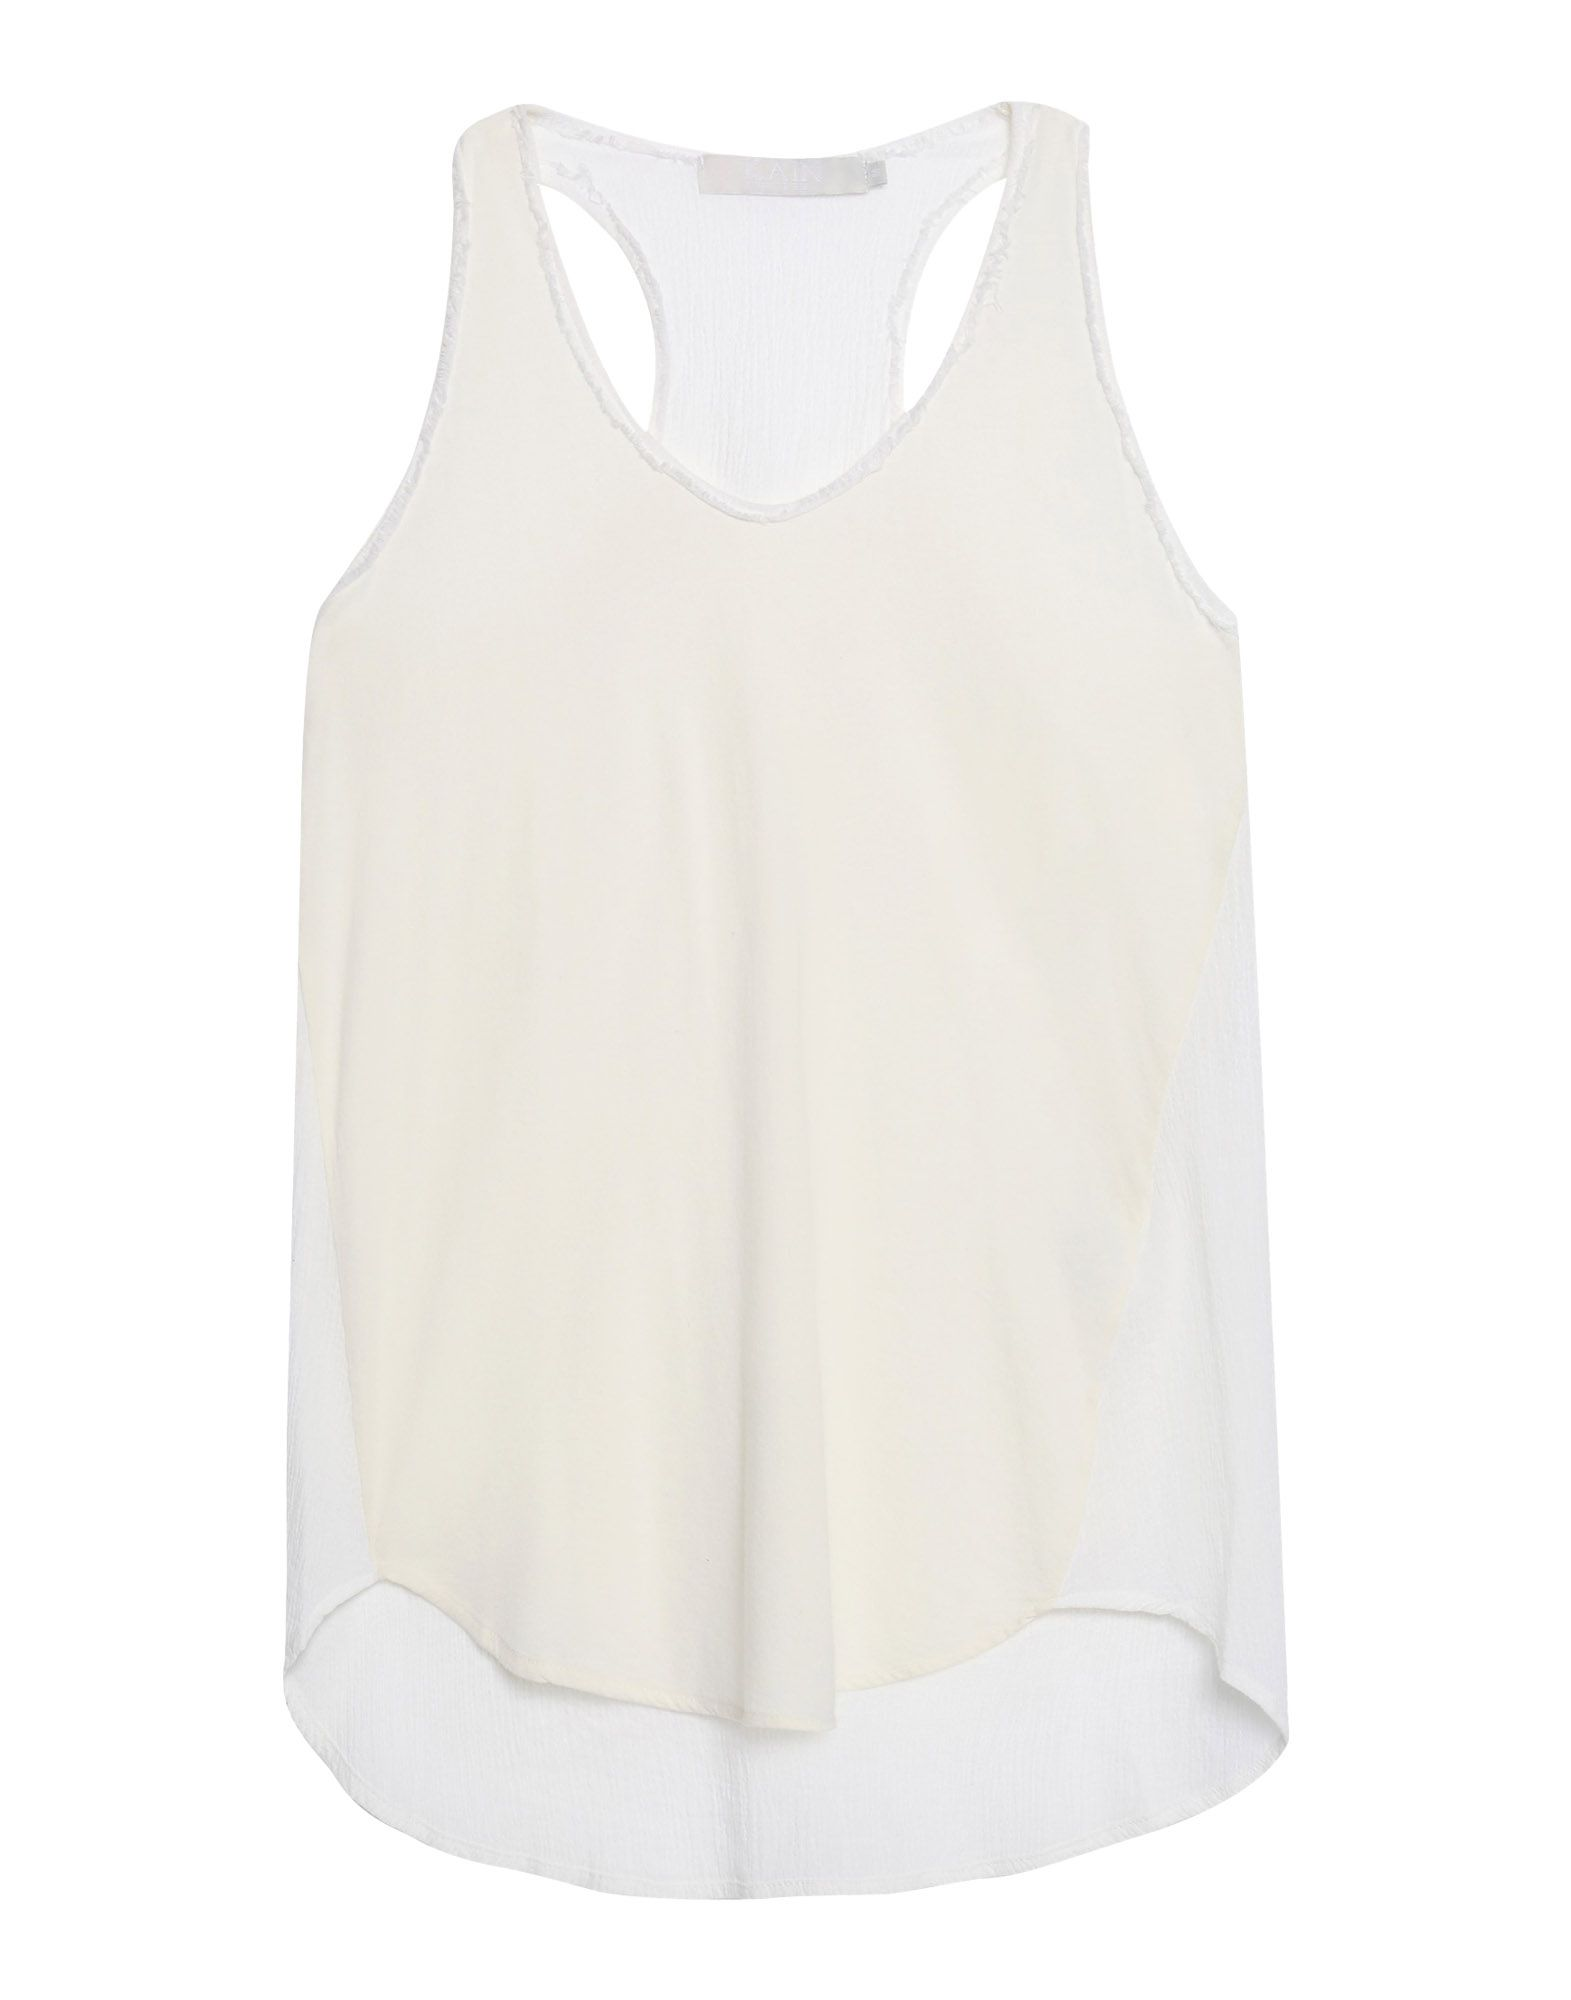 KAIN Tank Top in Ivory